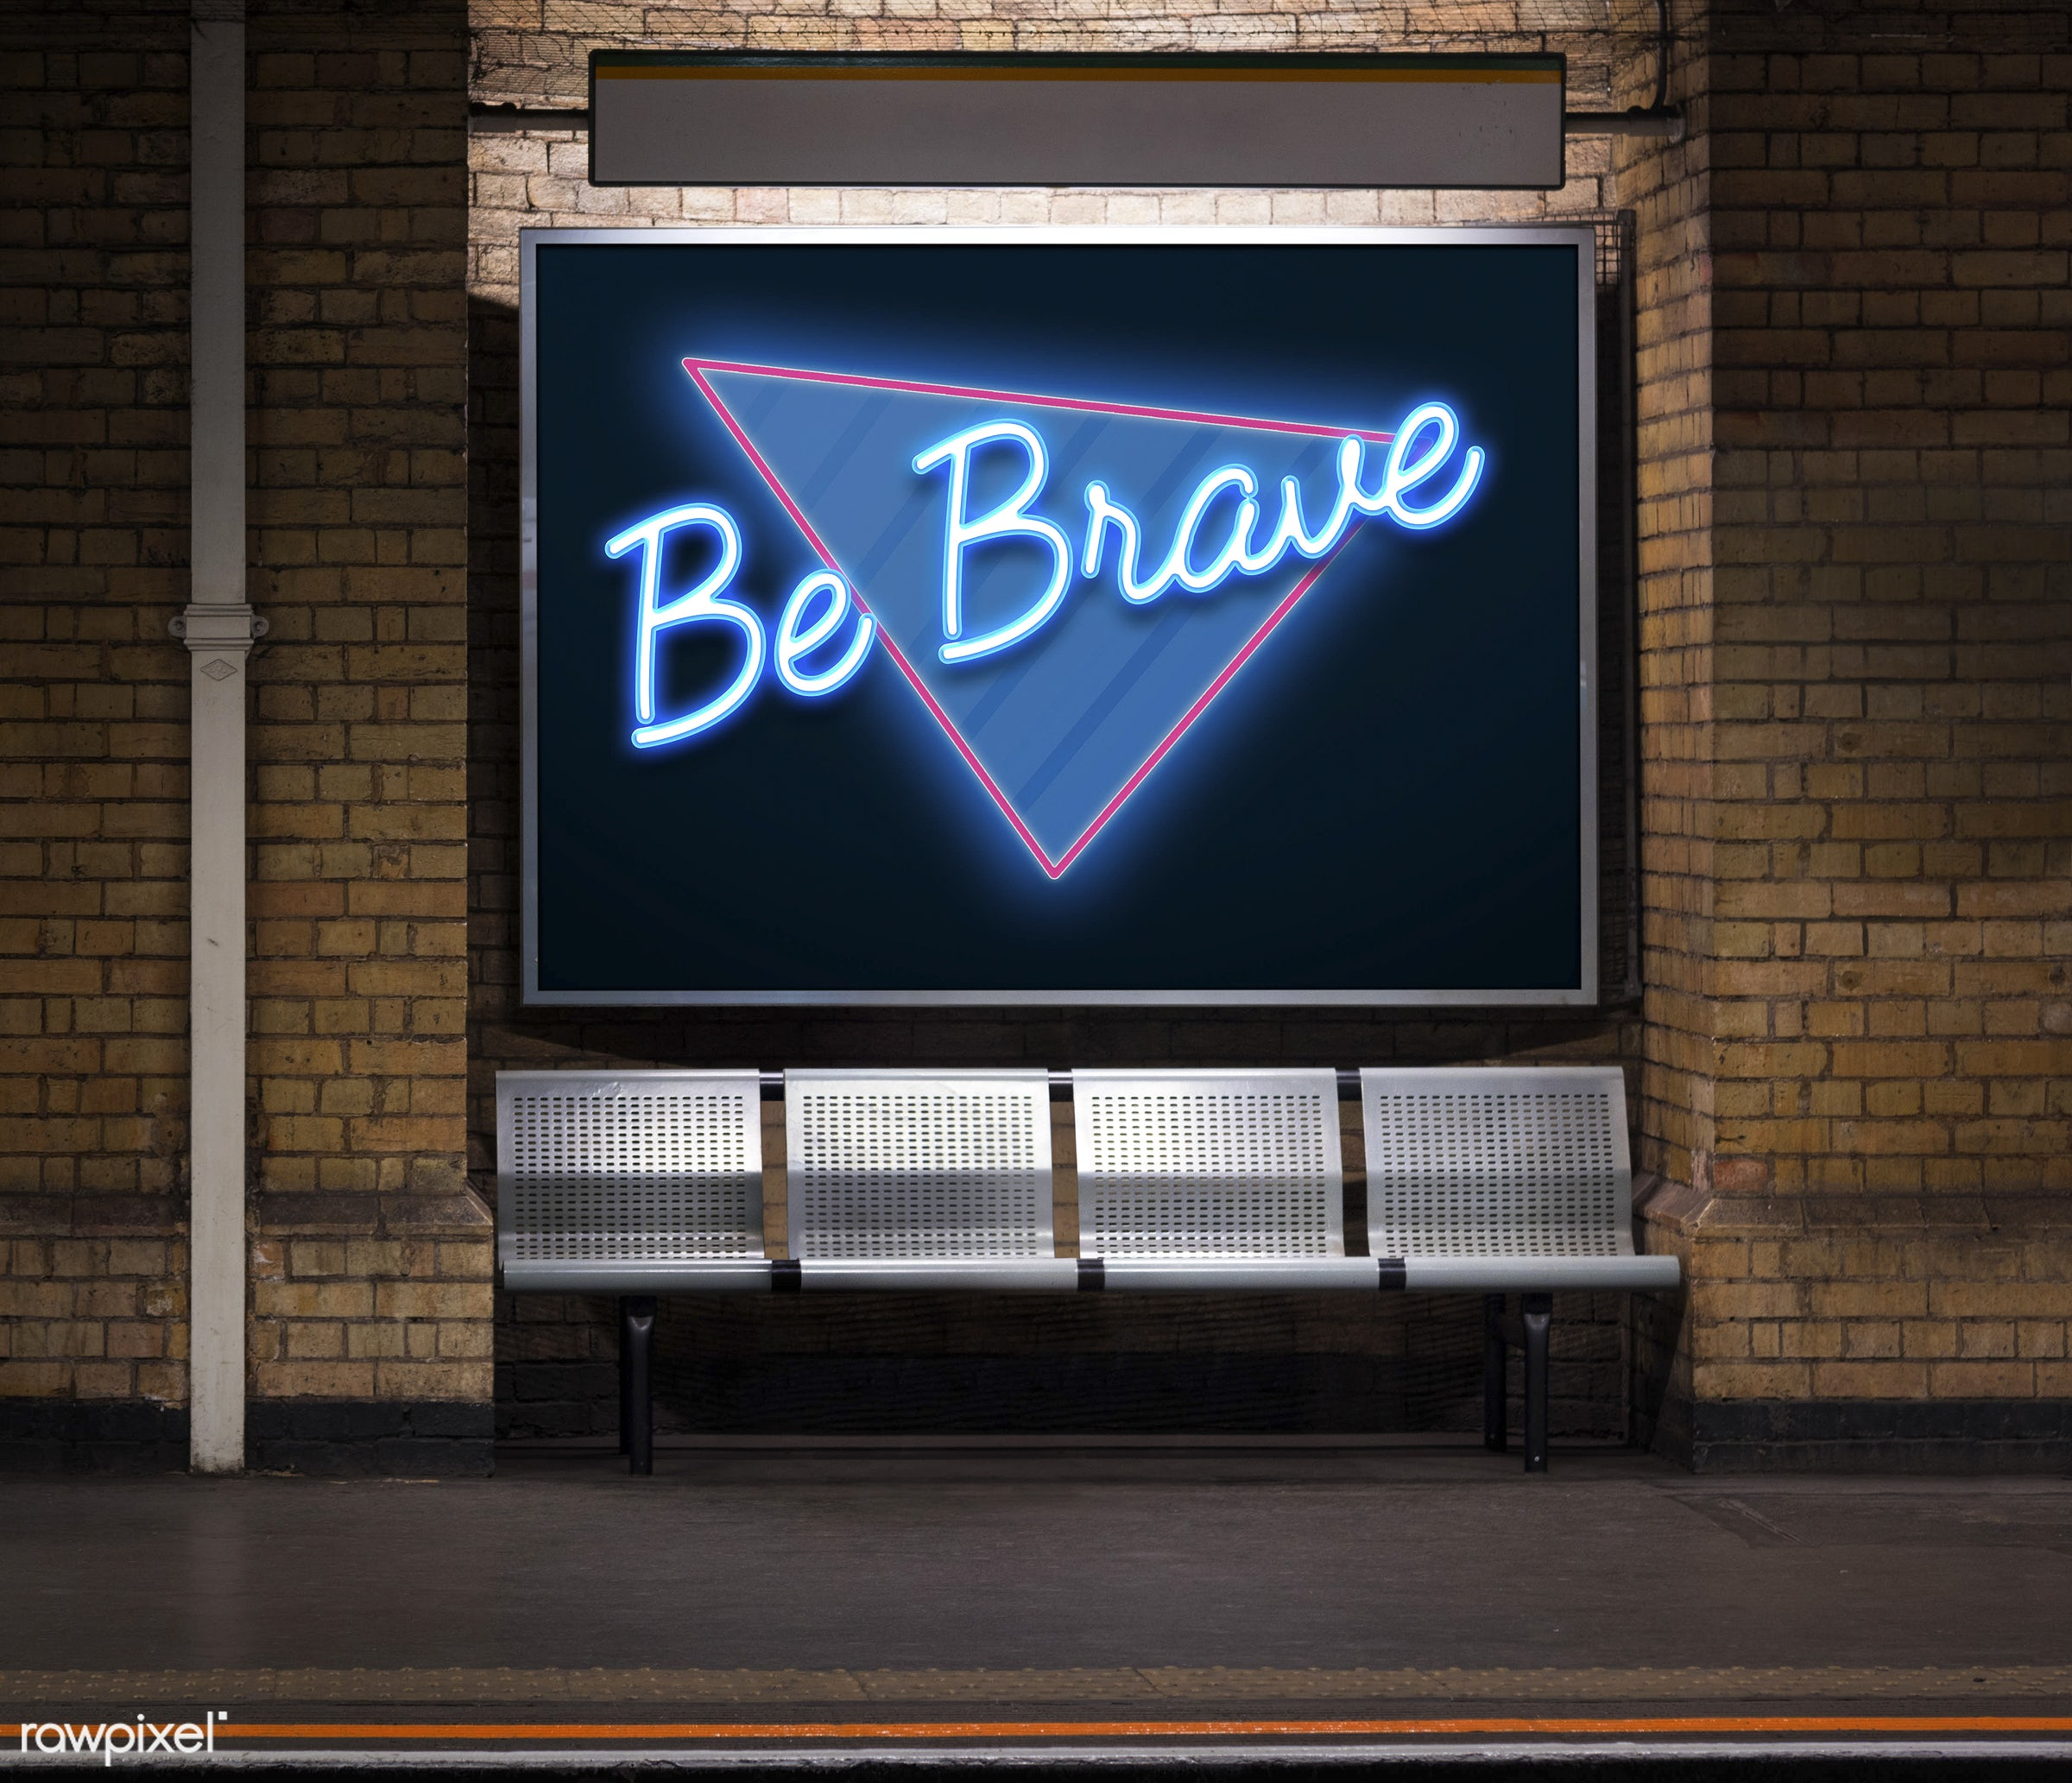 brave, bravery, bricks, brickswall, graphic, handwritten, inspiration, inspirational, inspire, kind, message, motivate,...